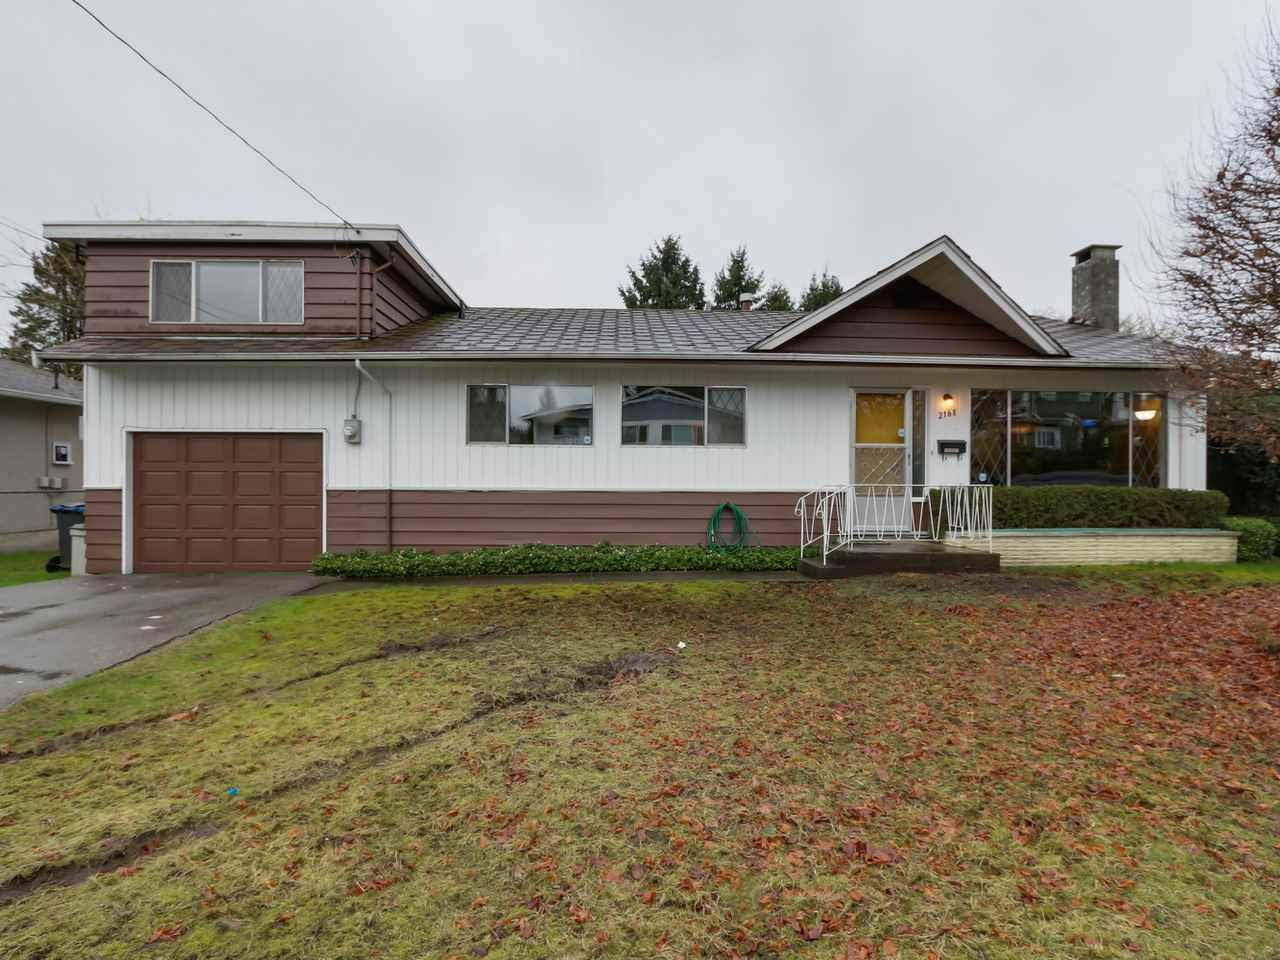 Main Photo: 2168 PRAIRIE Avenue in Port Coquitlam: Glenwood PQ House for sale : MLS®# R2041317